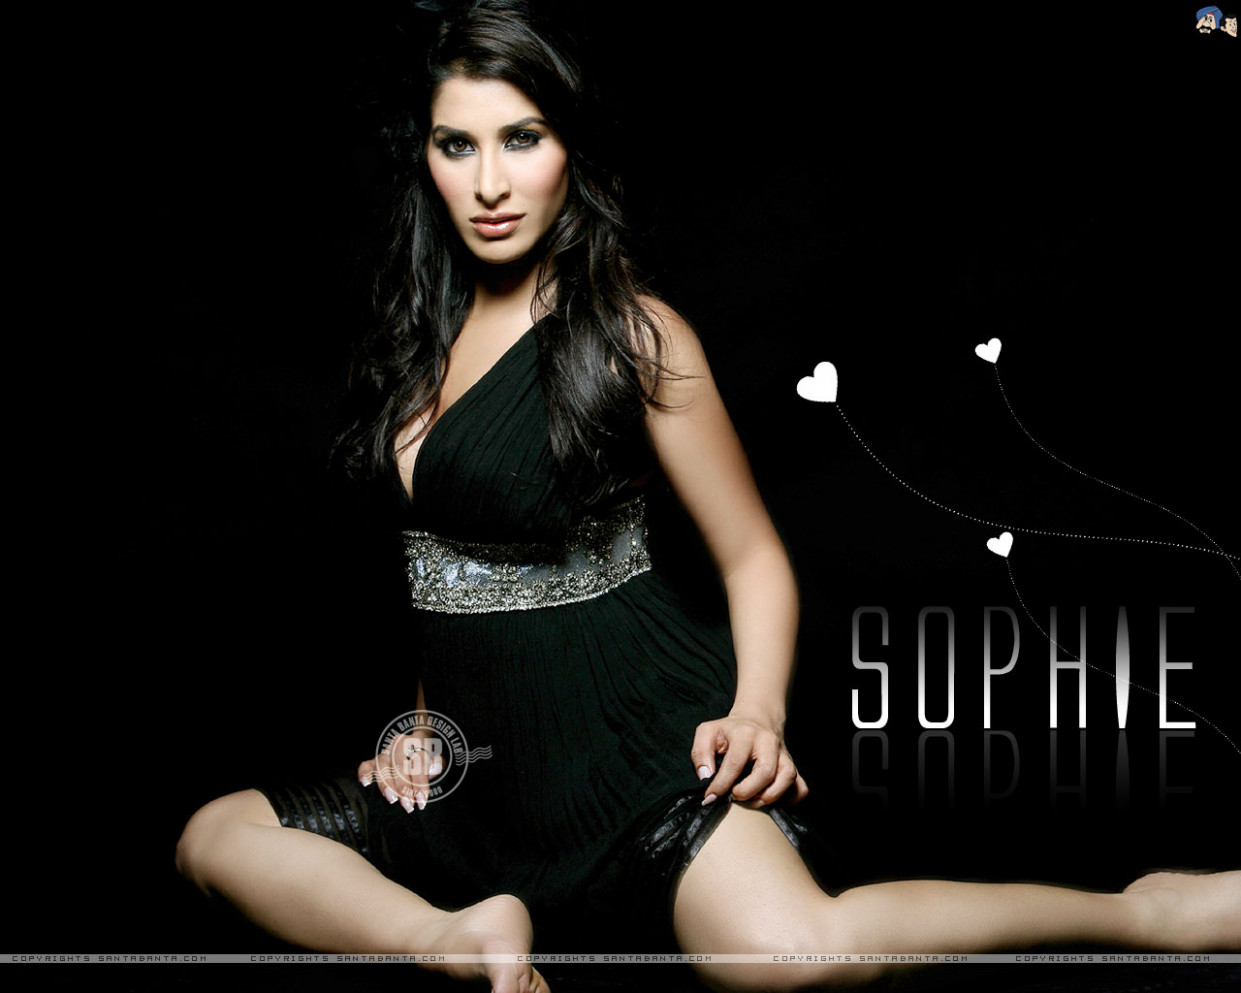 Hind Sindh 4u: Bollywood Queen 2012 HD Wallpapers